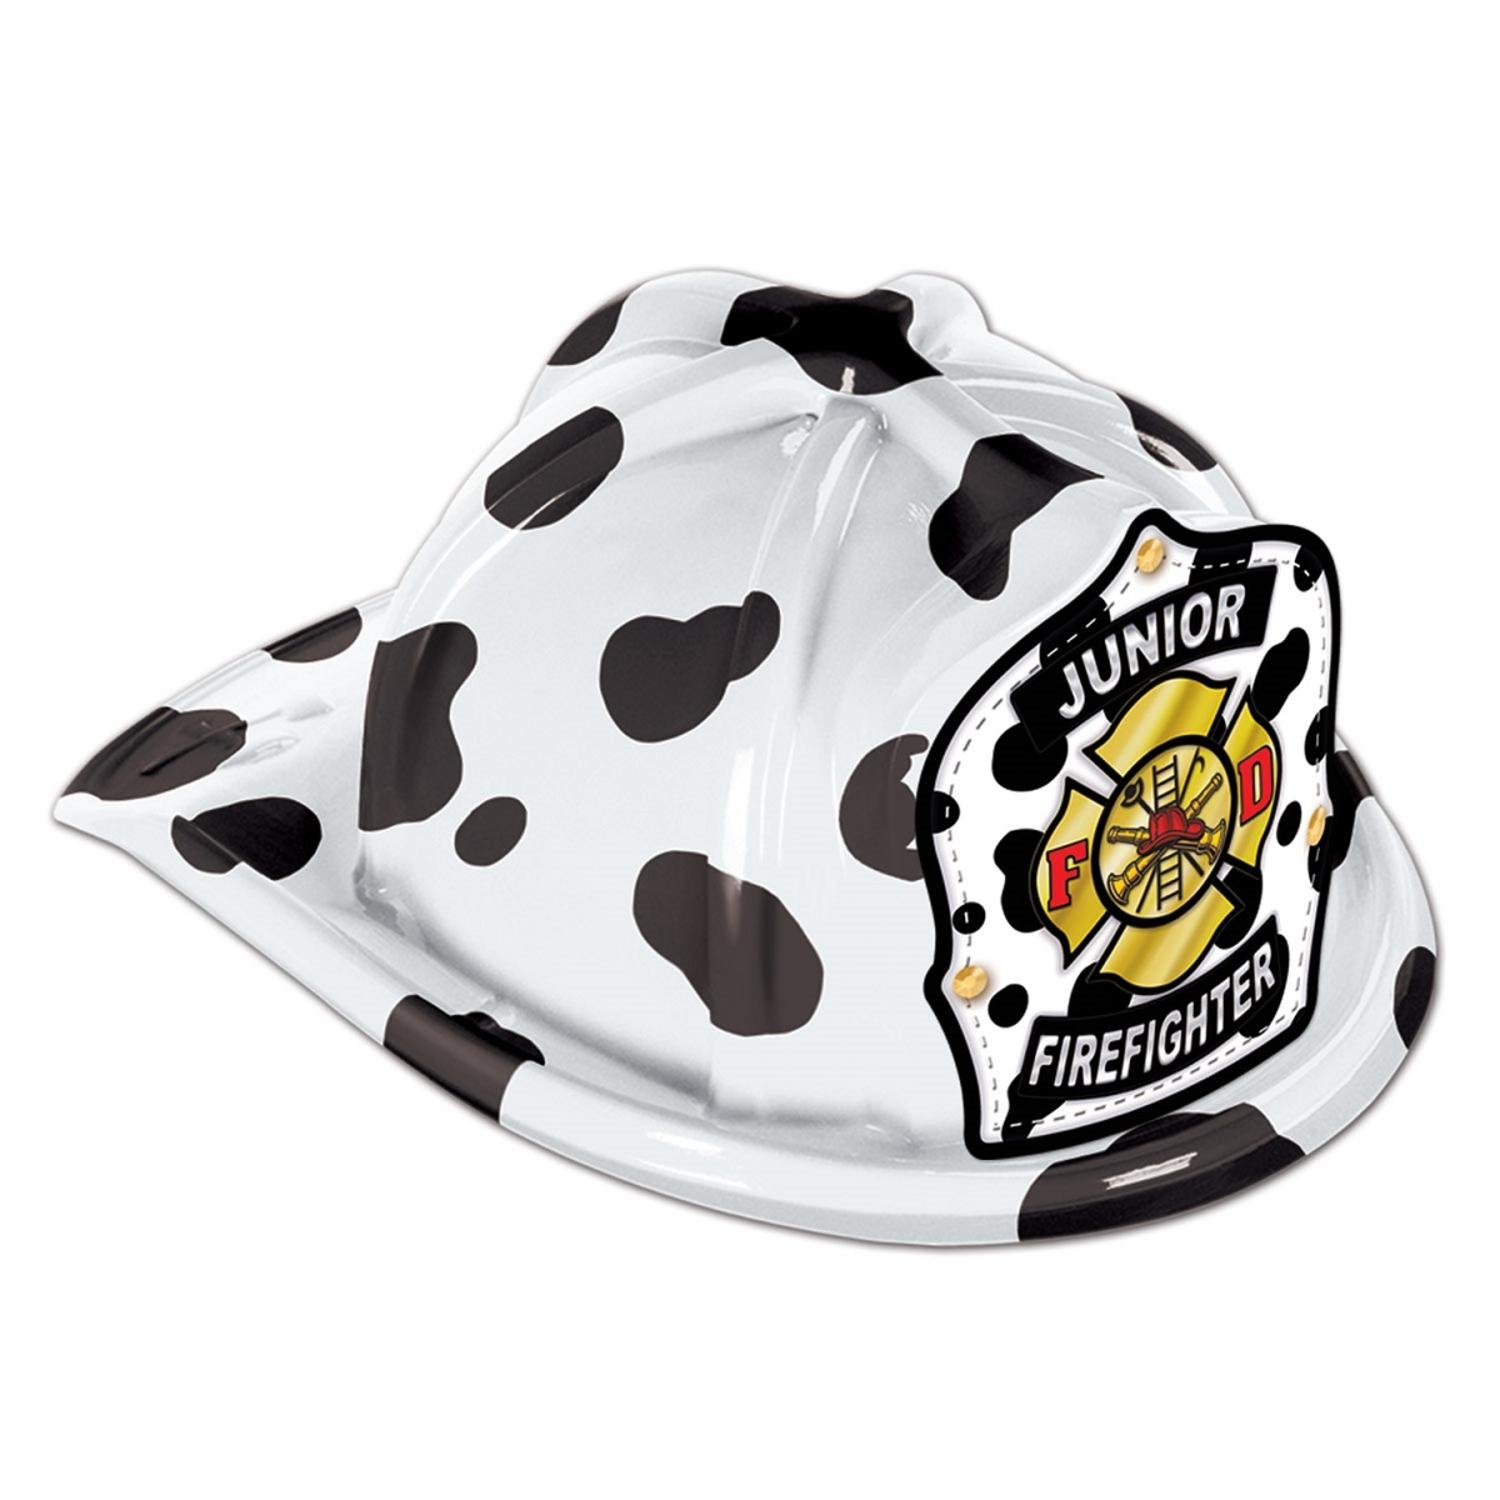 Club Pack of 48 Black and White Dalmatian Print Junior Firefighter Hat Costume Accessories by Party Central